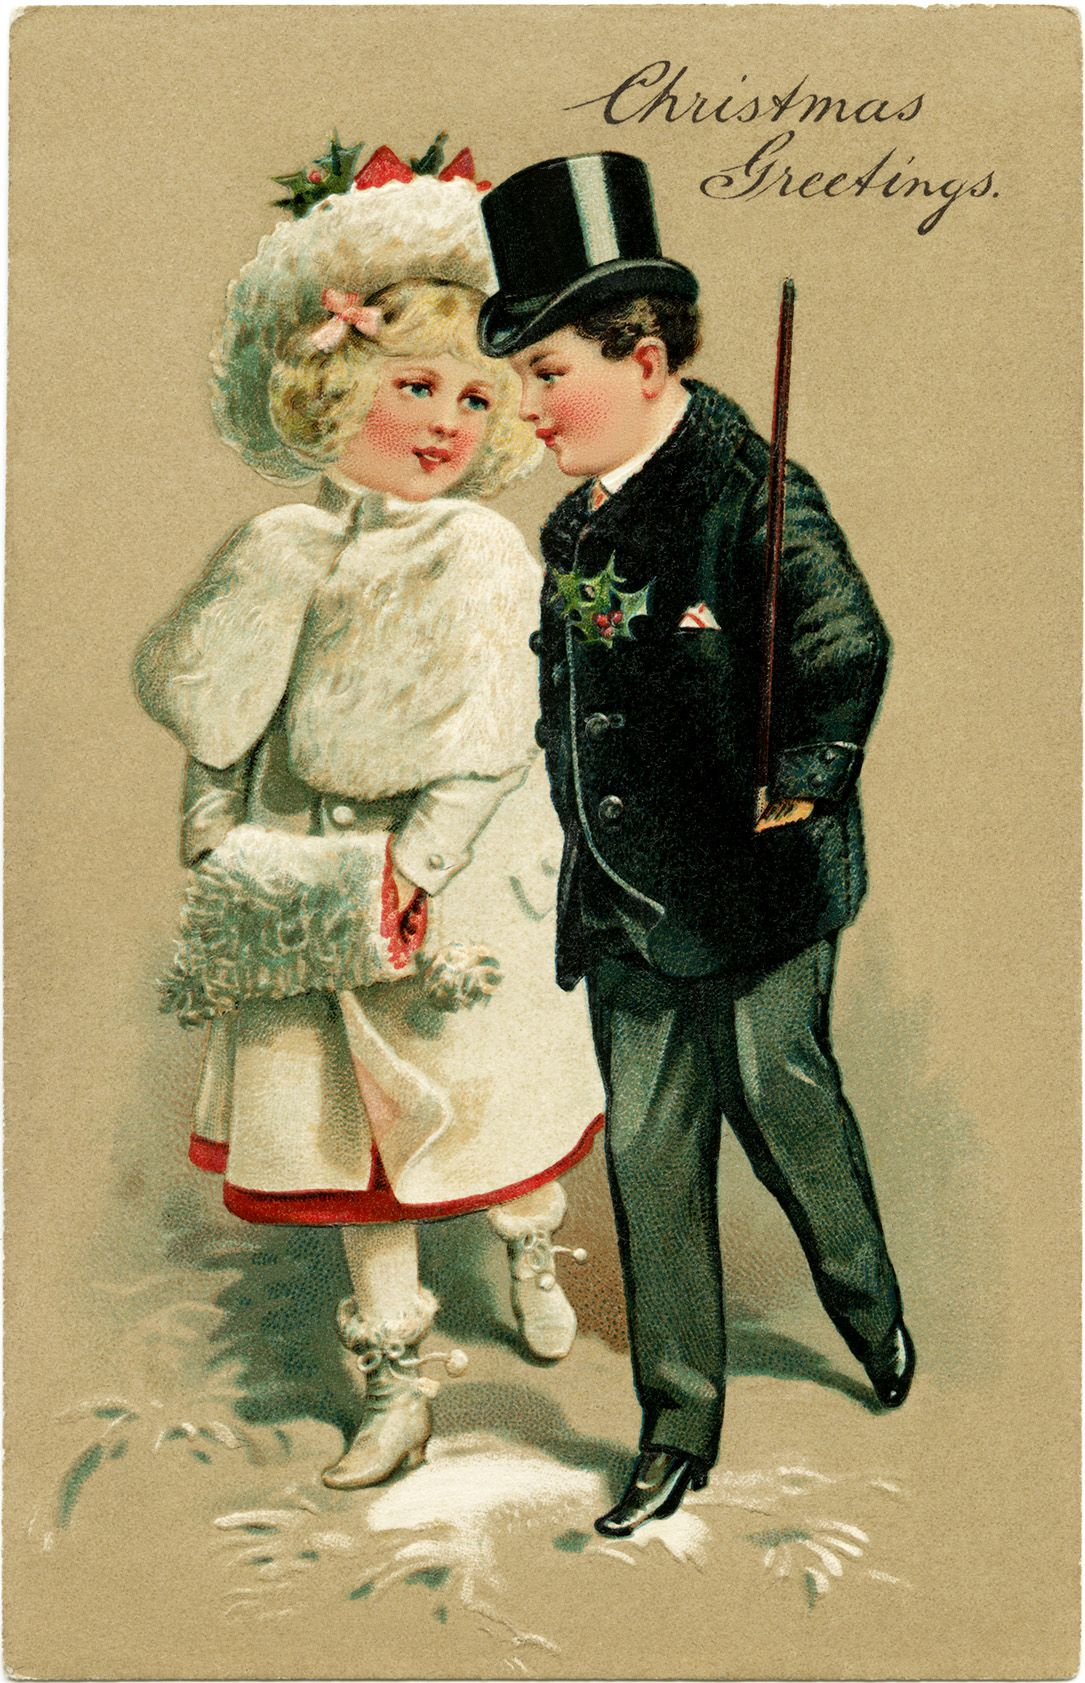 Old fashioned christmas clip art victorian children clipart old fashioned christmas clip art victorian children clipart vintage christmas postcard old kristyandbryce Image collections